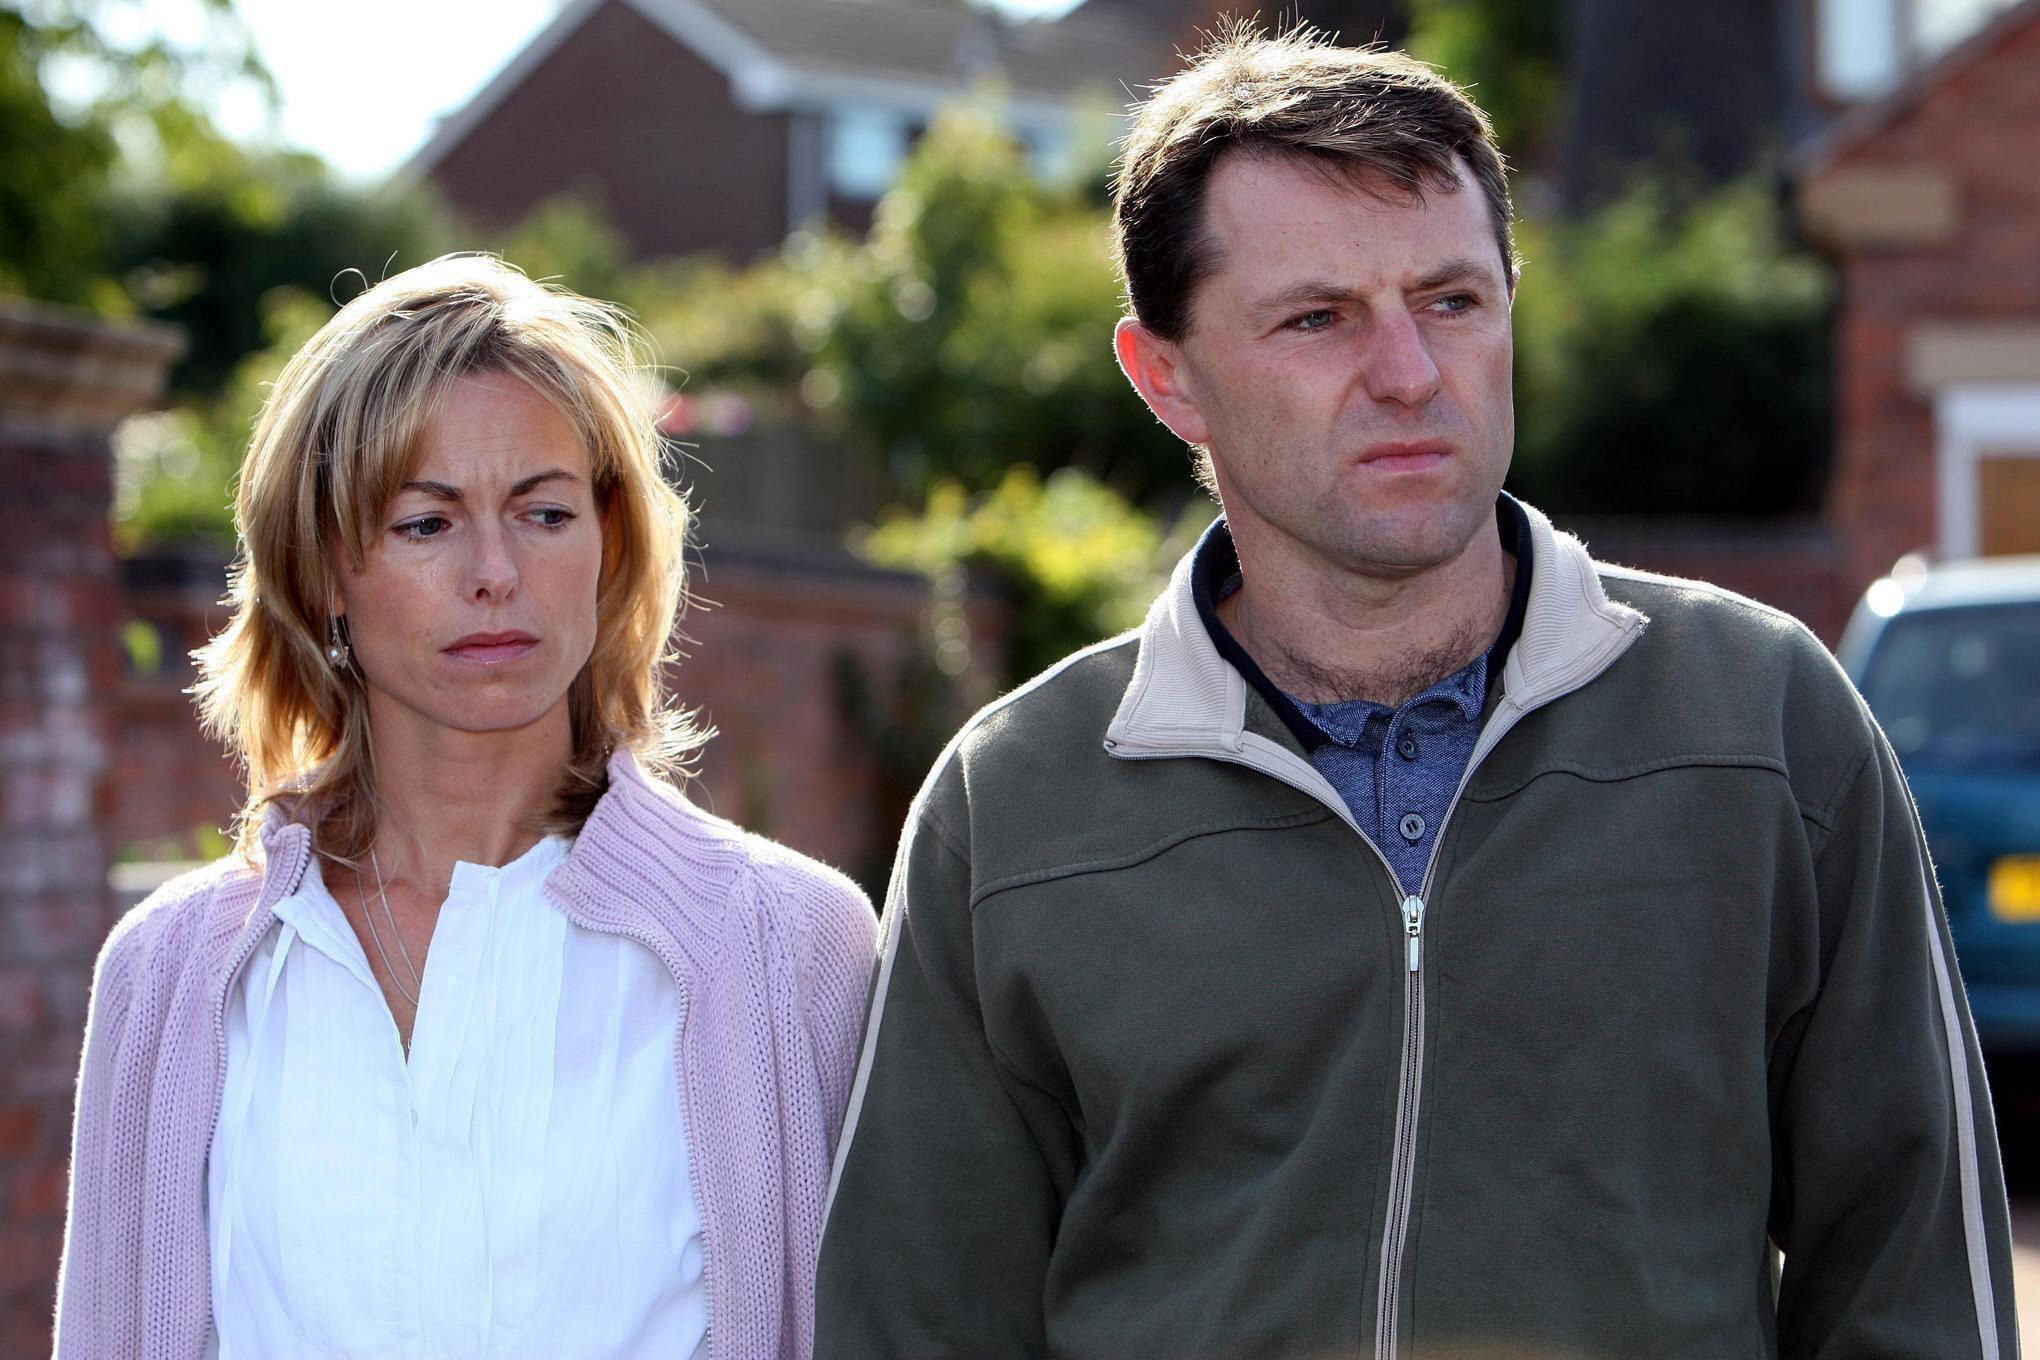 US chat shows vie for McCann interview